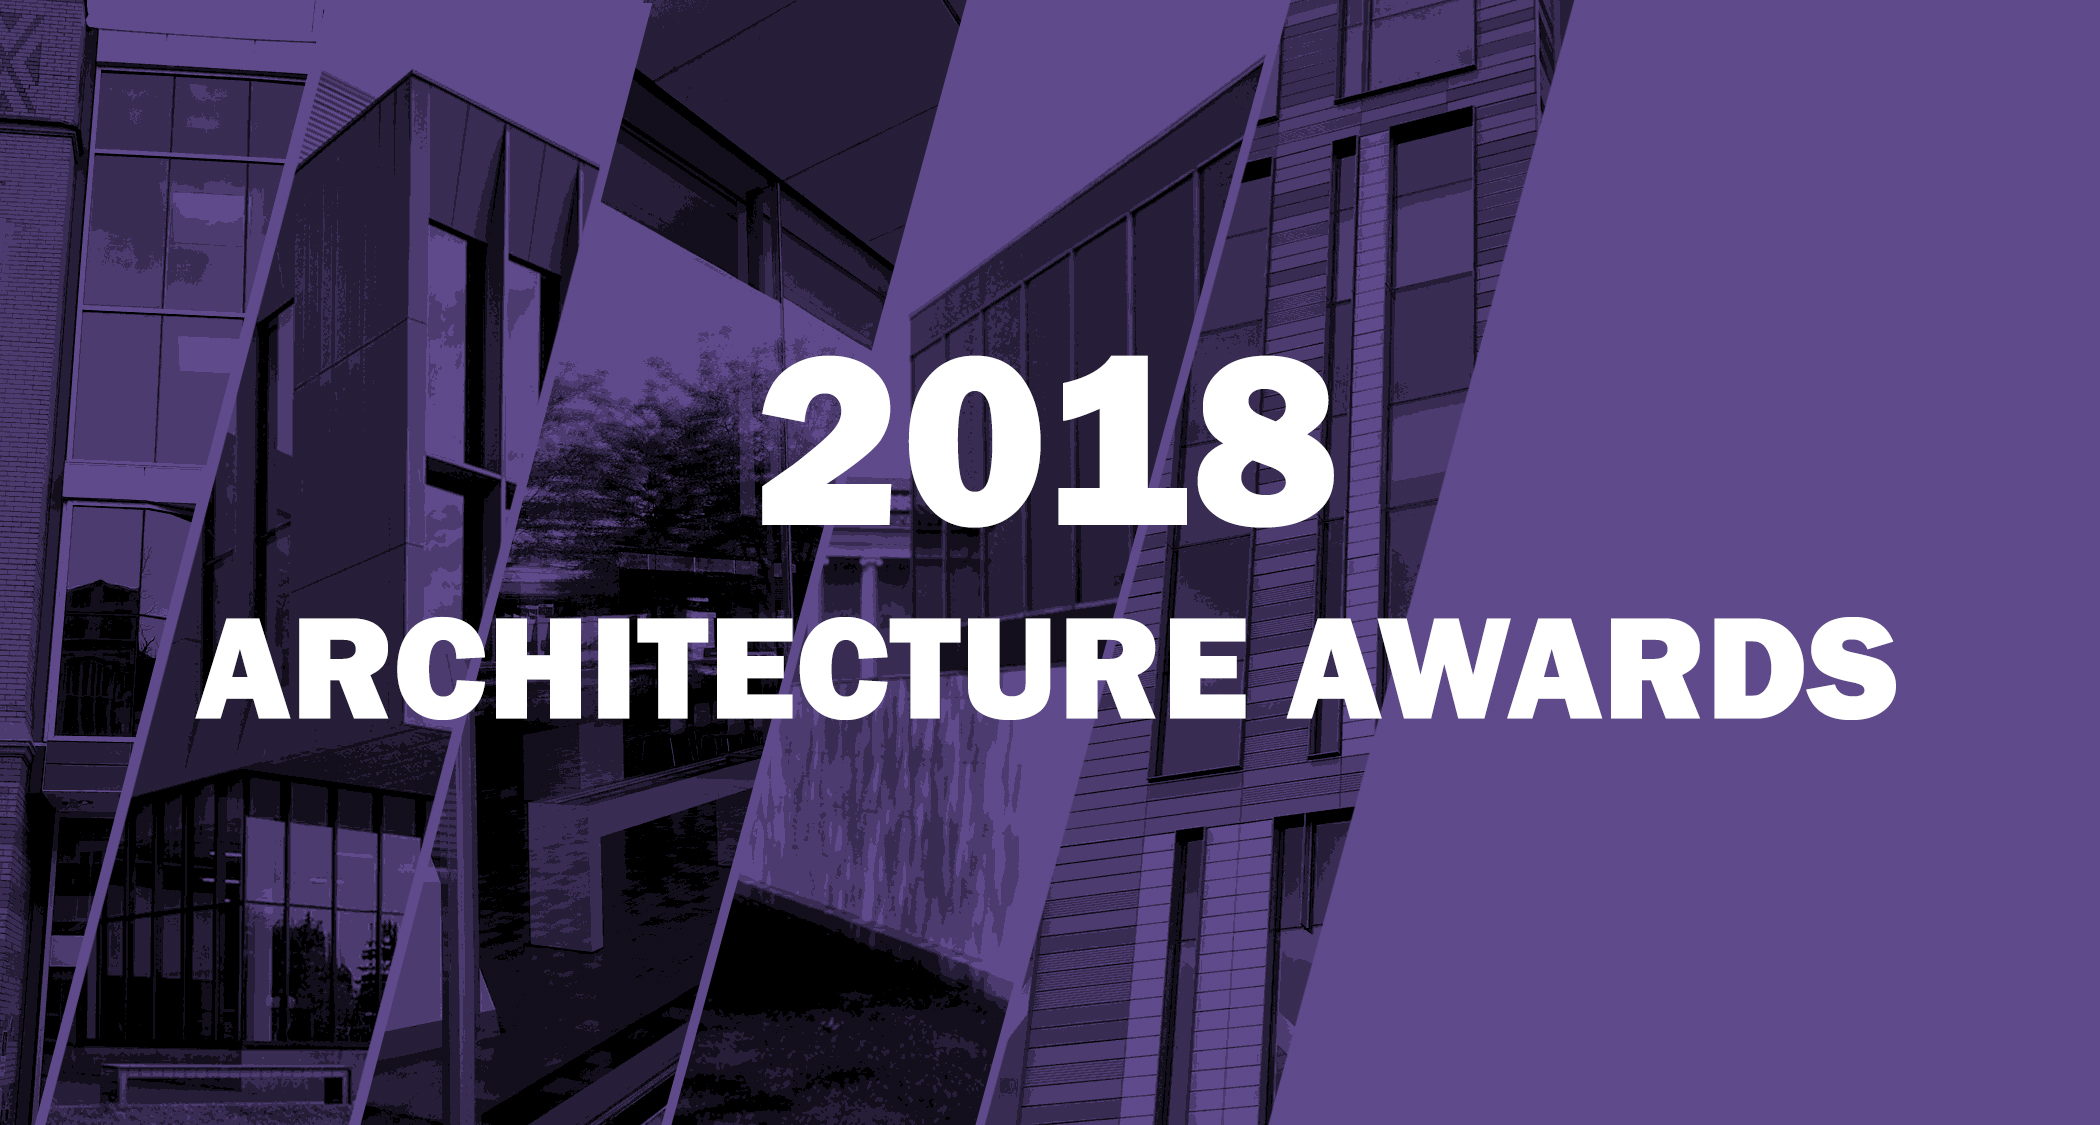 2018 Architecture Awards Banner.jpg